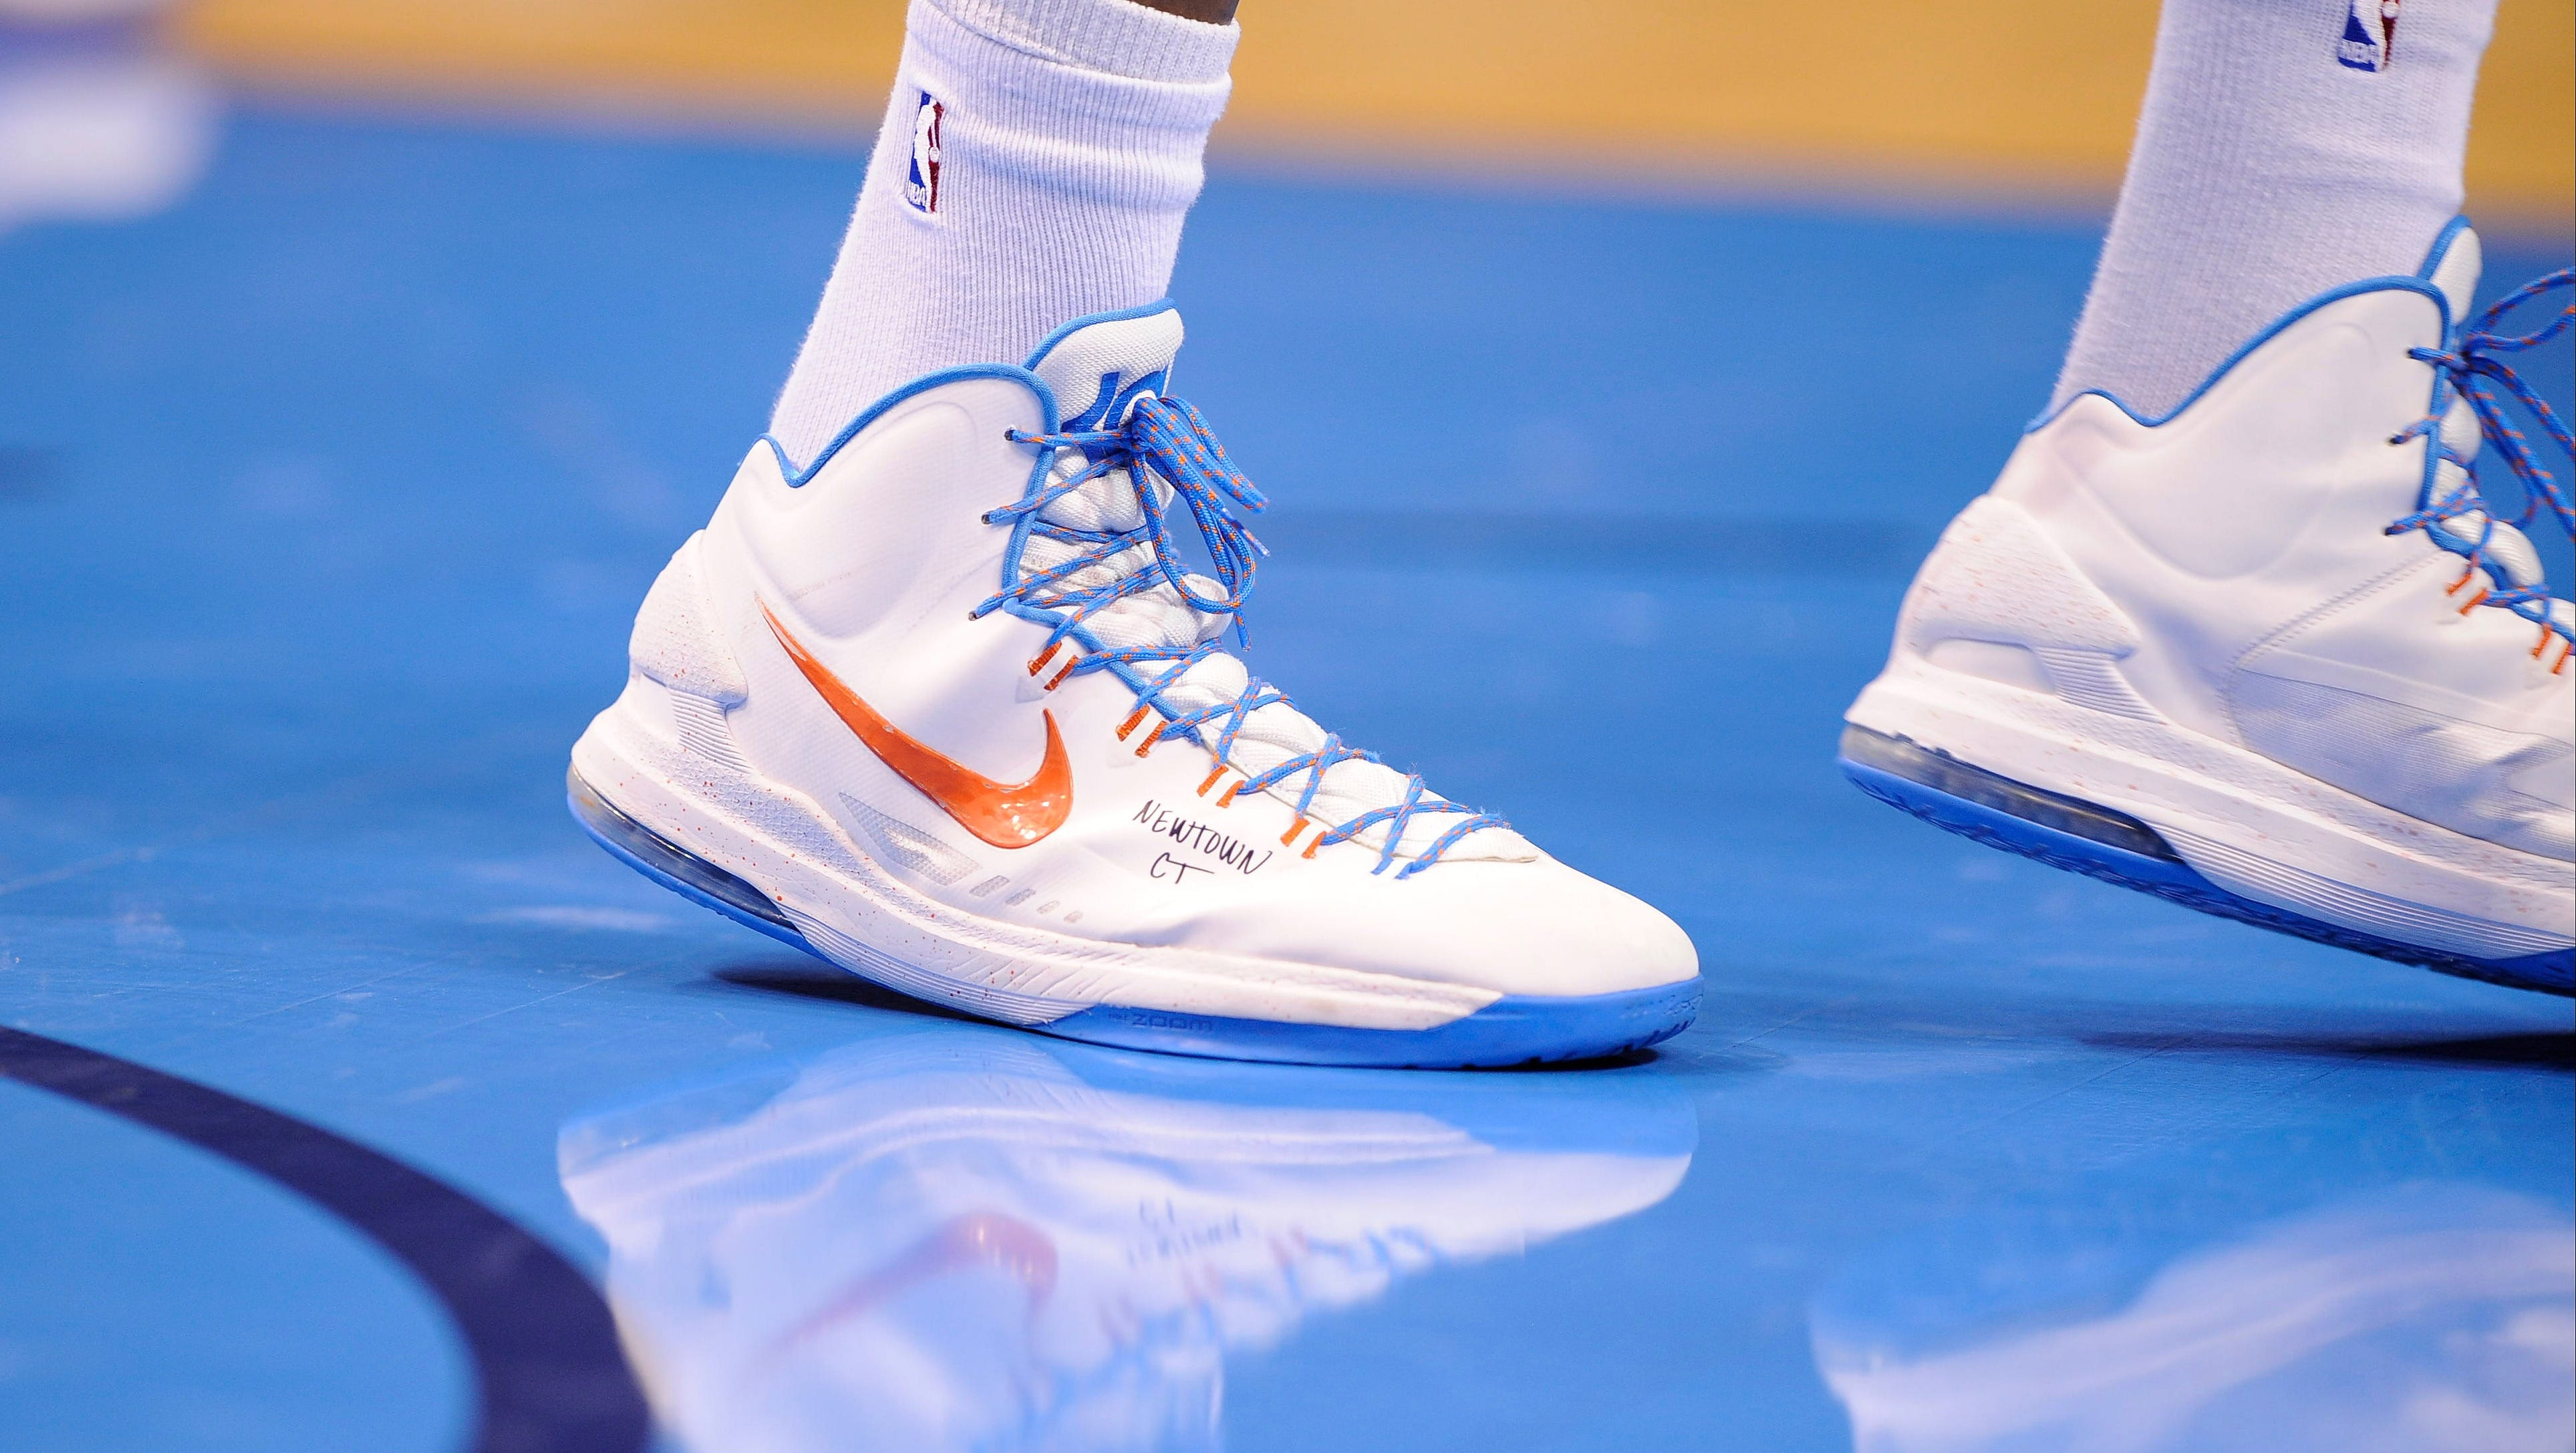 Kevin Durant pays tribute to Newtown